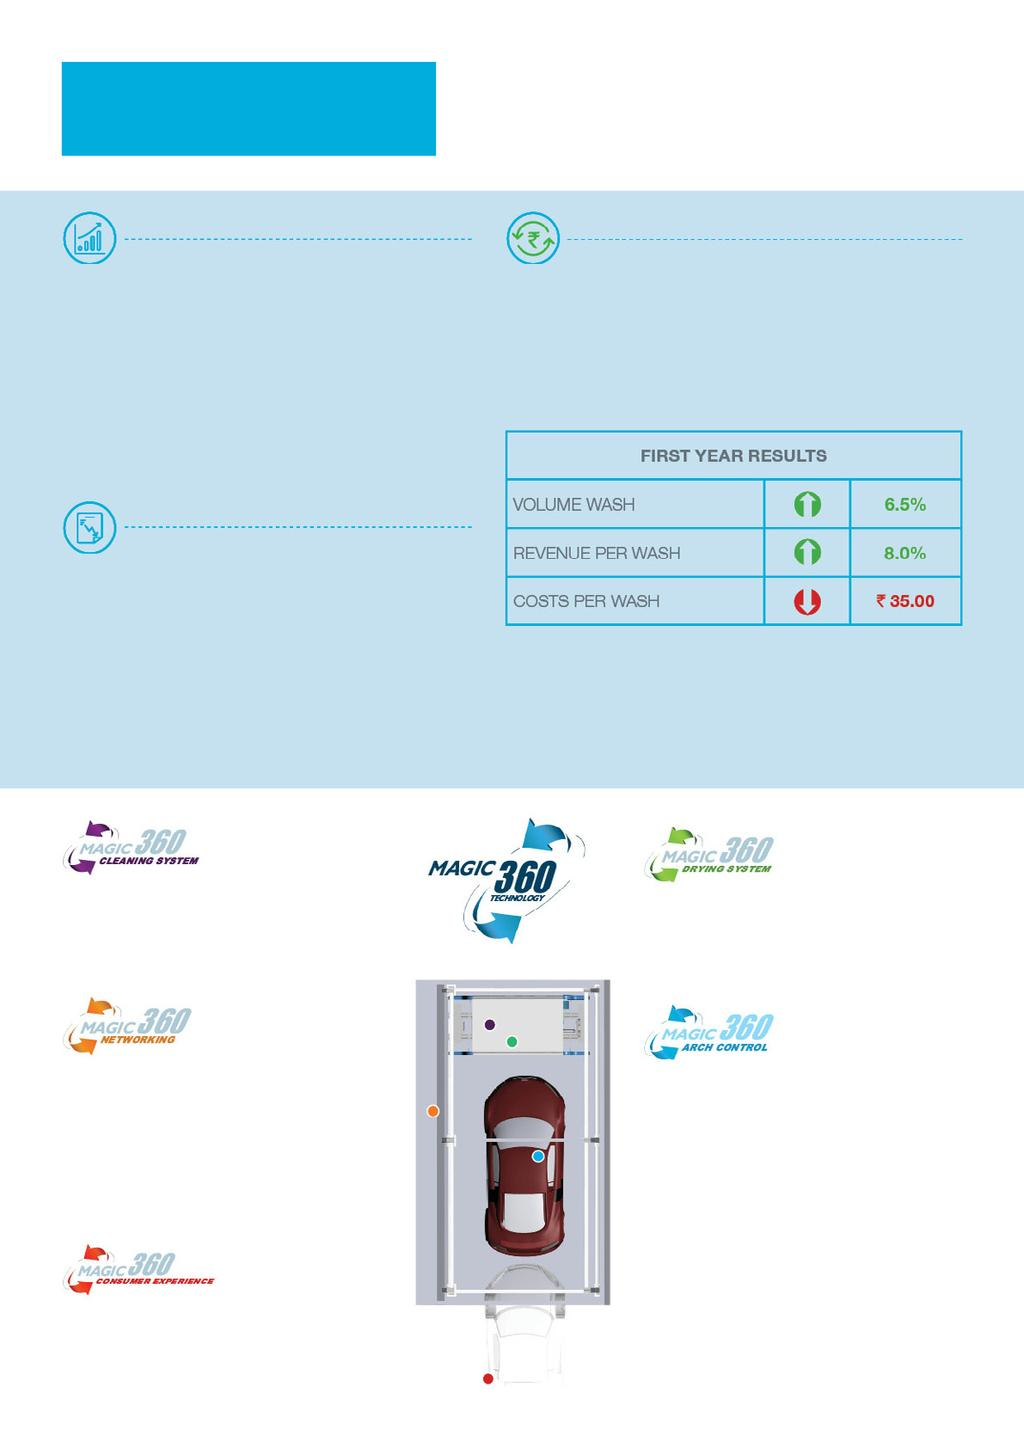 SIMPLE, SMART & SOPHISTICATED INCREASED REVENUE The MagicWash 360 car wash system allows more opportunities to enhance your revenue stream with new service offerings and improve car wash package